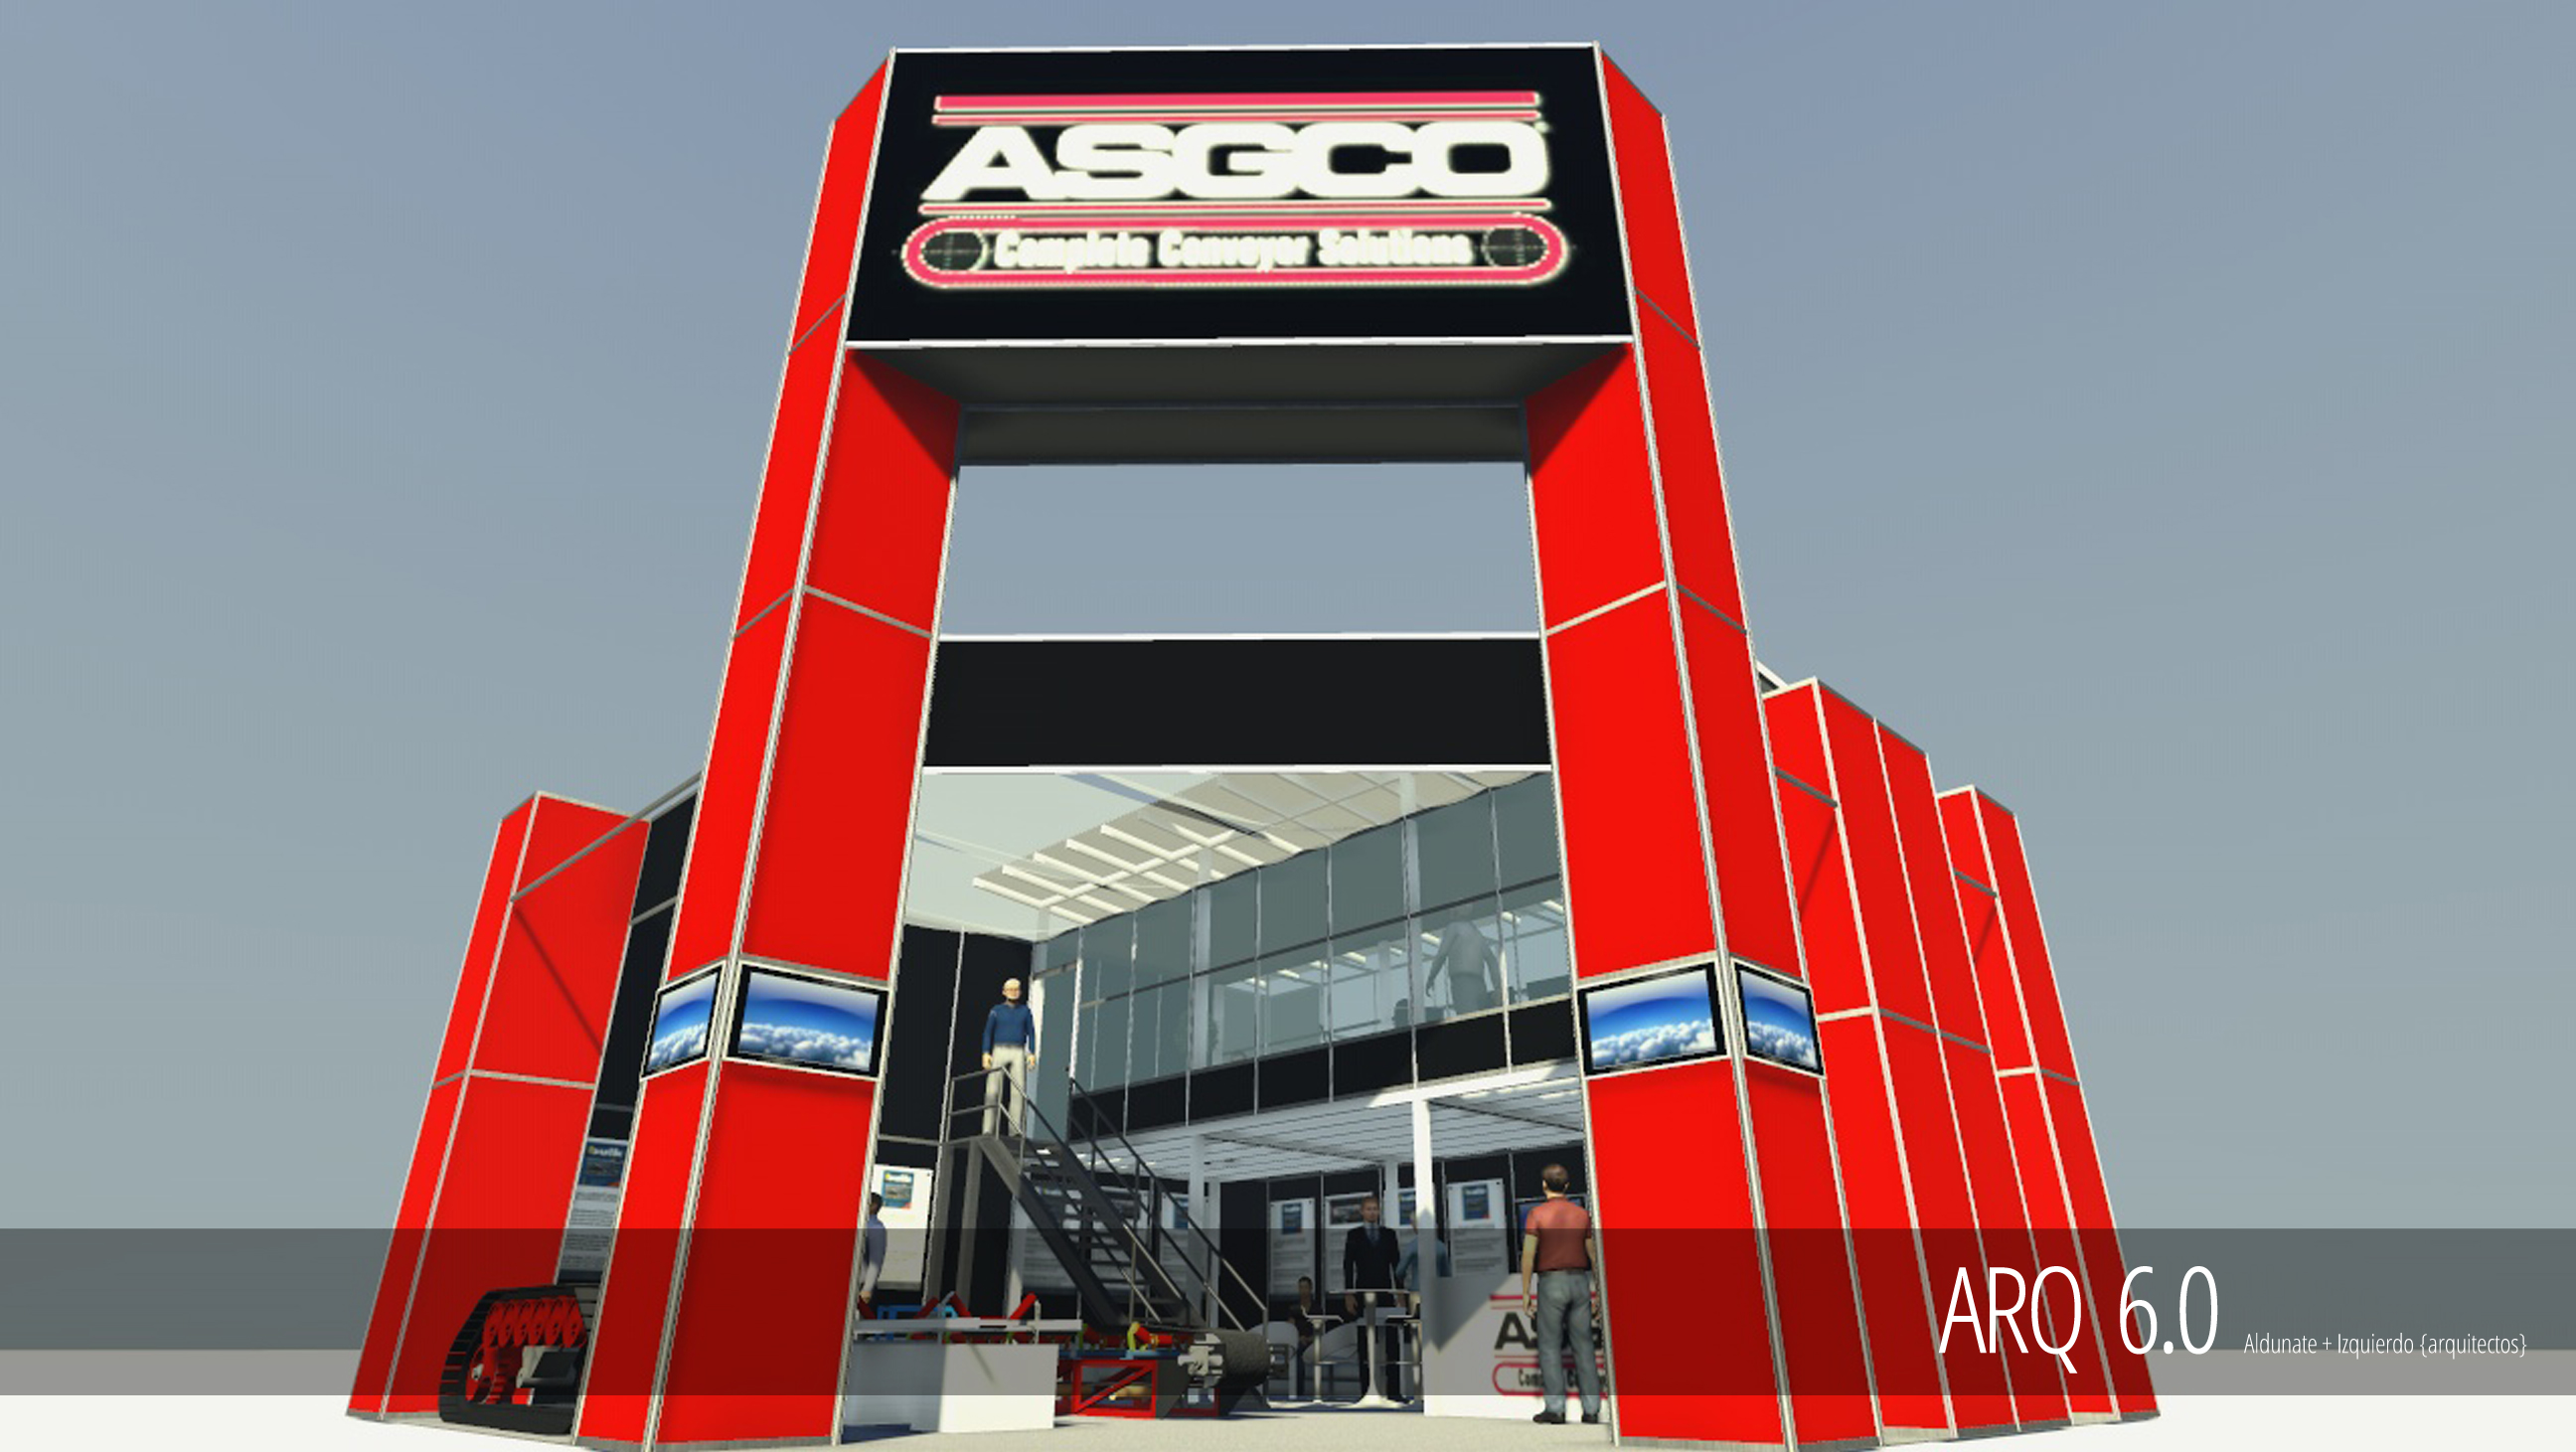 Stand Asgco - Expomin 2014